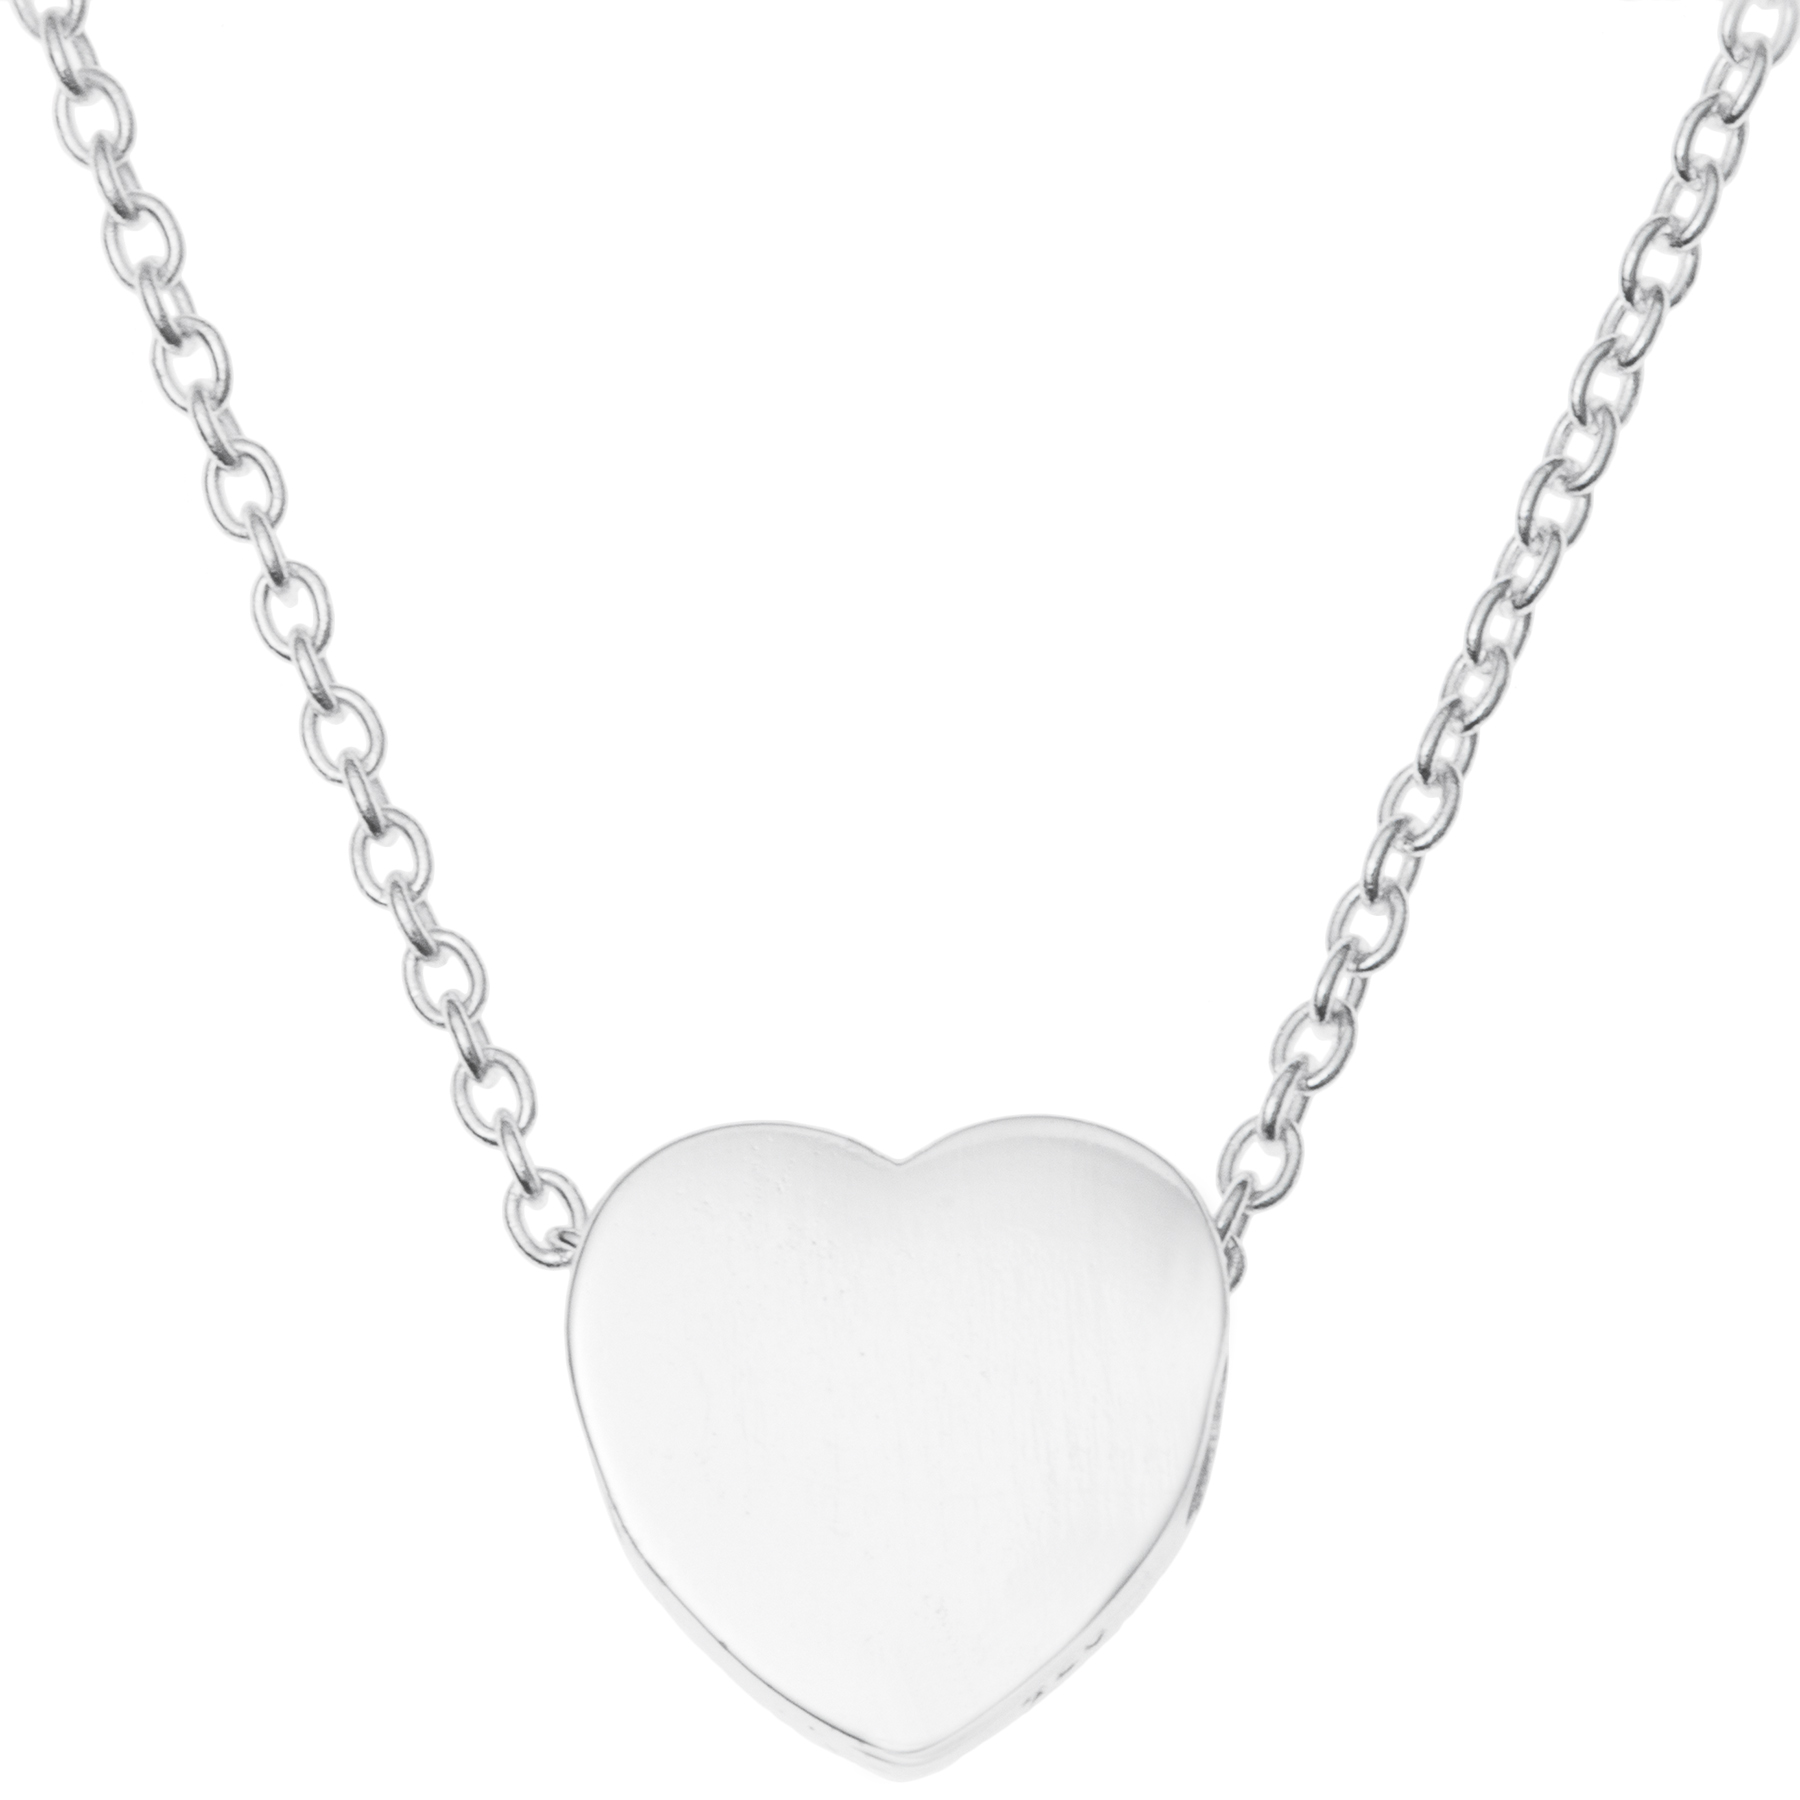 925 Sterling Silver Love Heart Dangle Charm Pendant Rolo Chain Necklace 16 Inches with 1 Inch Extender